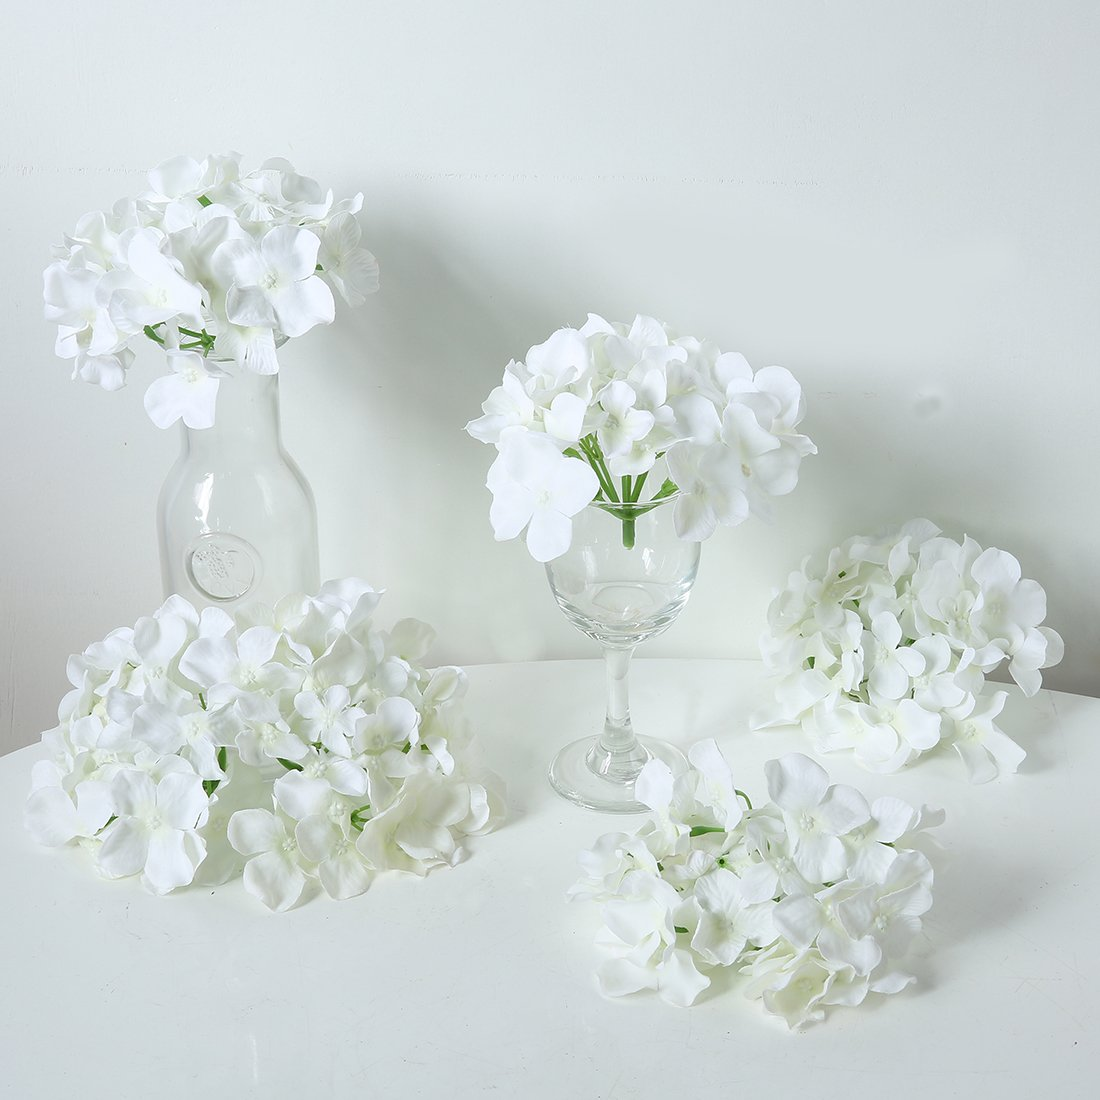 Amazon.com: Veryhome Blooming Silk Hydrangea Flower Heads for DIY ...